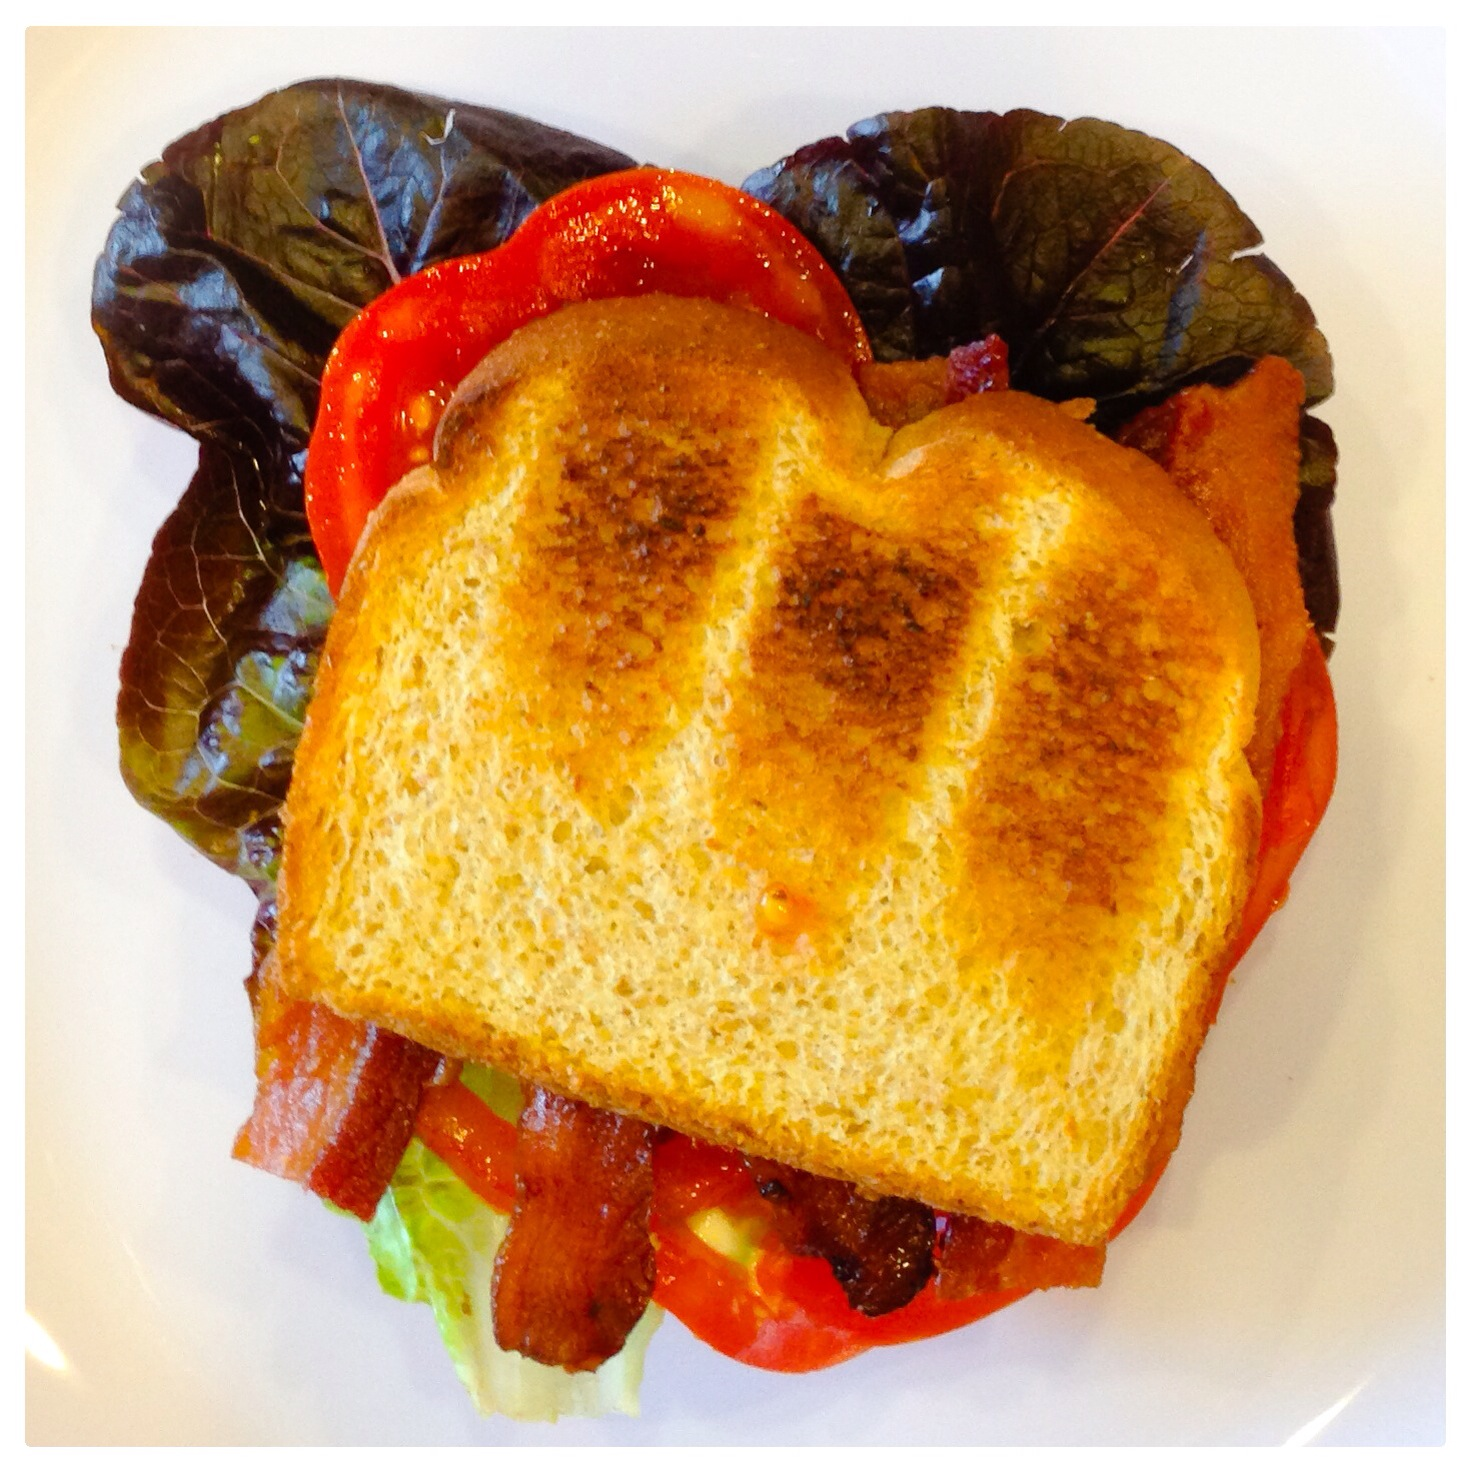 Picture of a BLT